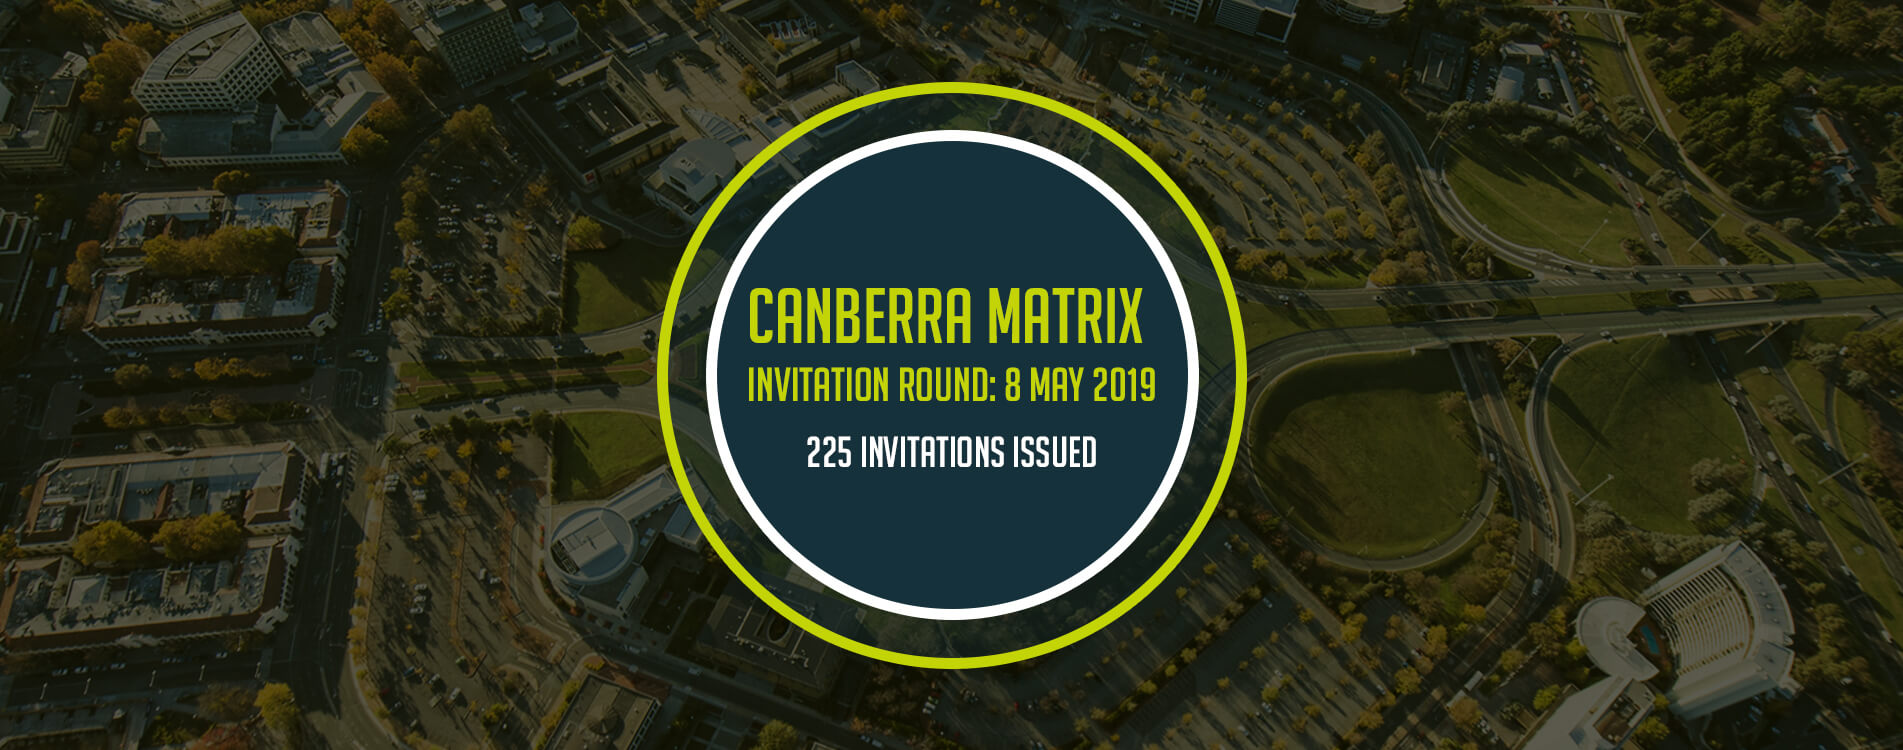 Canberra Matrix Invitation List for May 2019 is Out